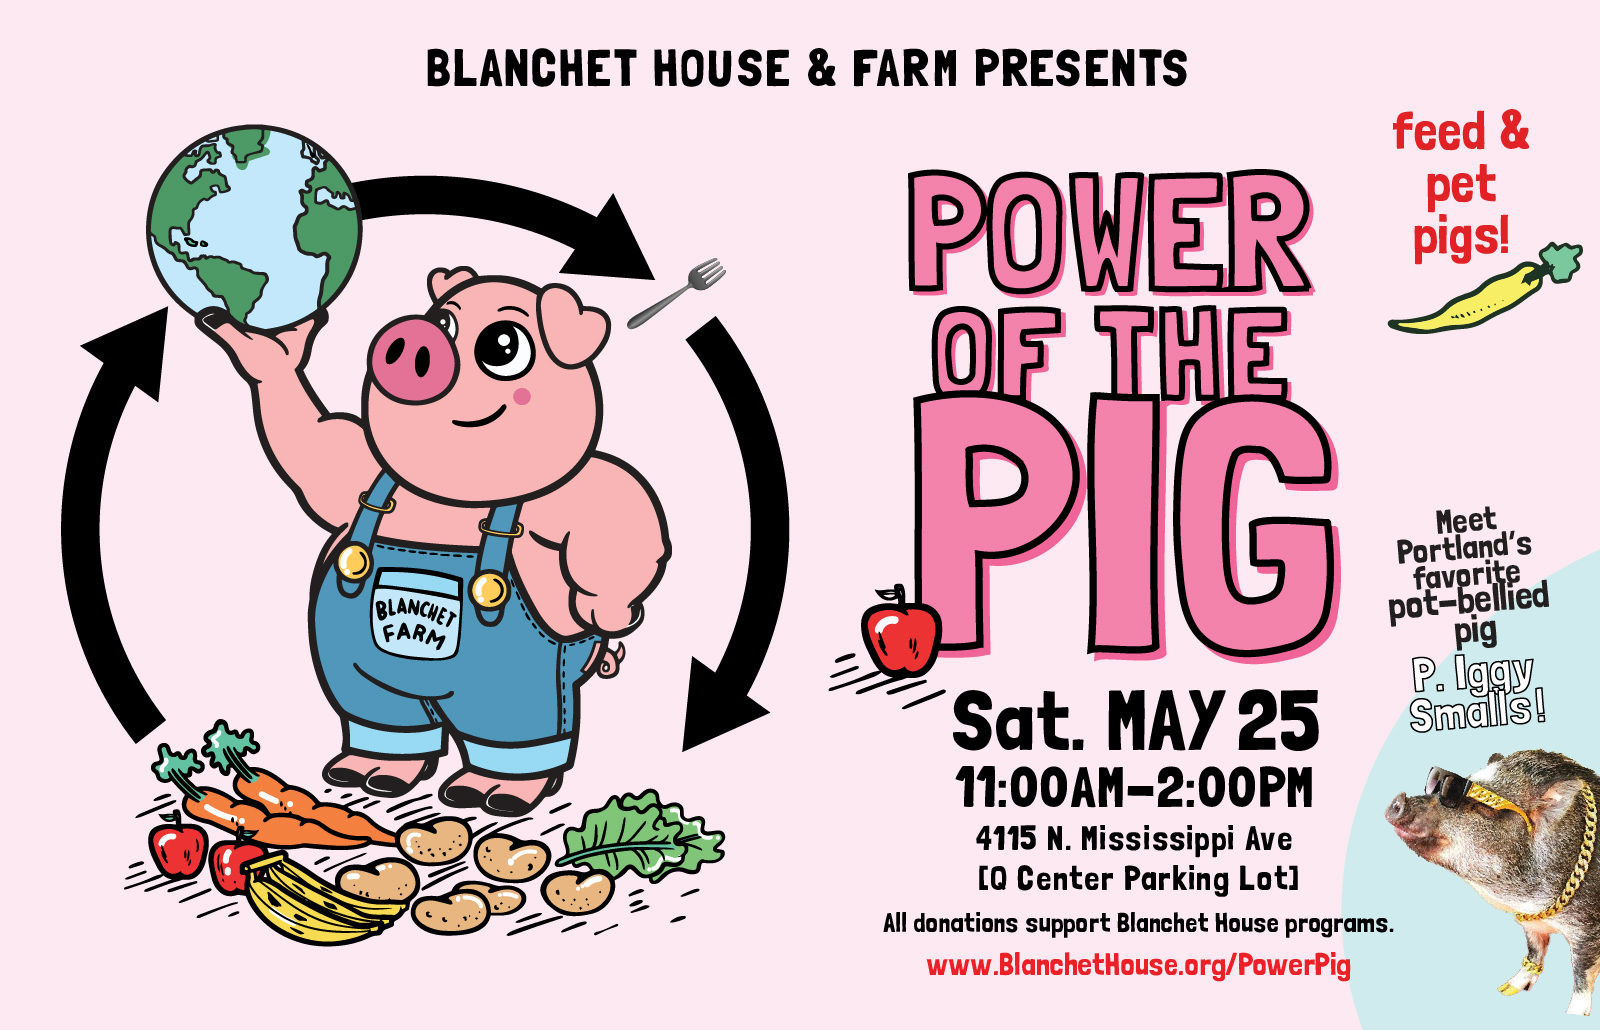 Power of the pig Blanchet House event Q center